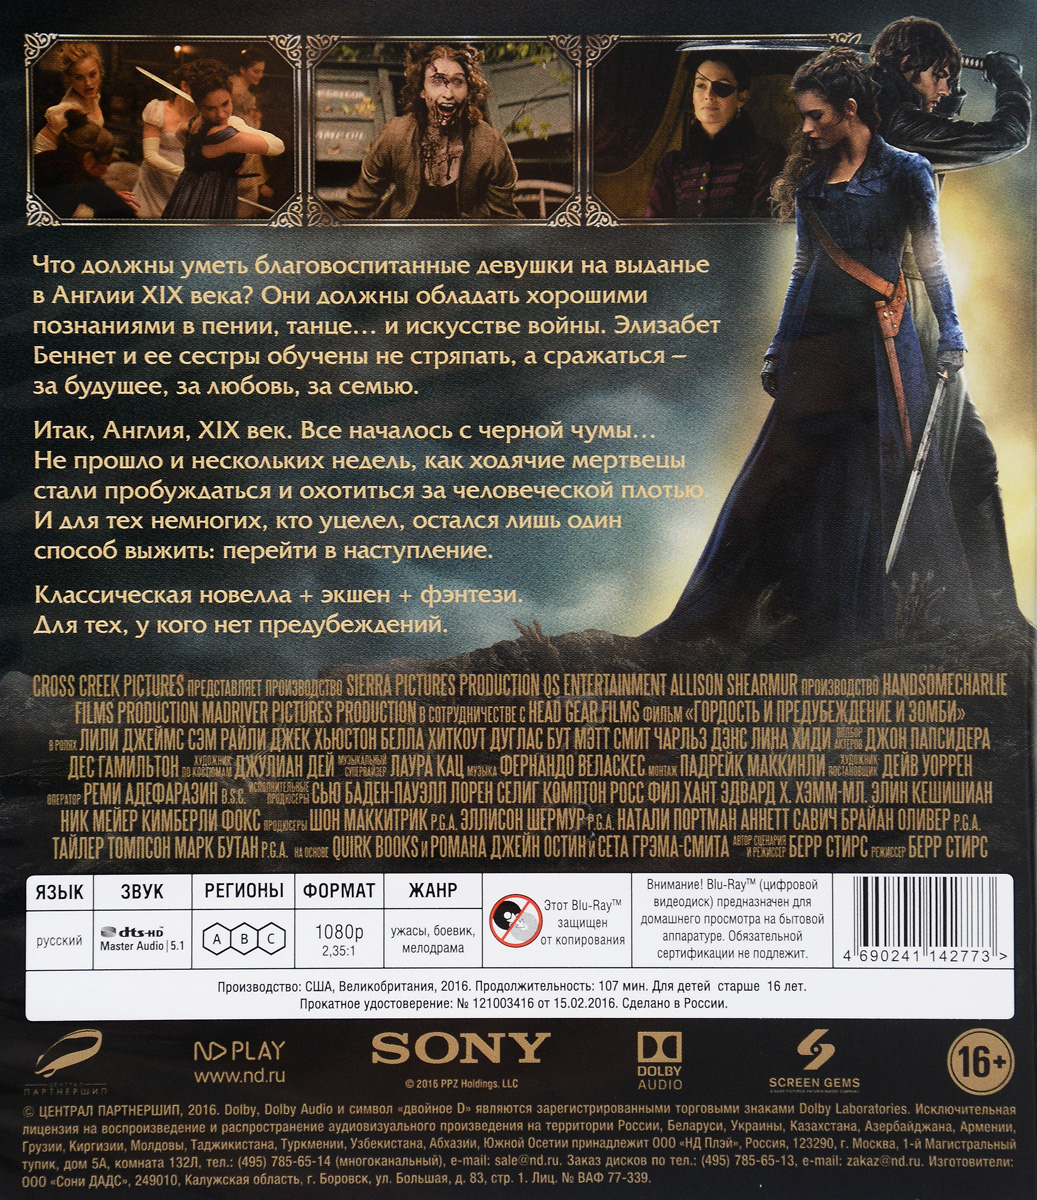 Гордость и предубеждение и зомби (Blu-ray) Allison Shearmur Productions,Cross Creek Pictures,Darko Entertainment,Handsomecharlie Films,Head Gear Films,Lionsgate,MadRiver Pictures,QC Entertainment